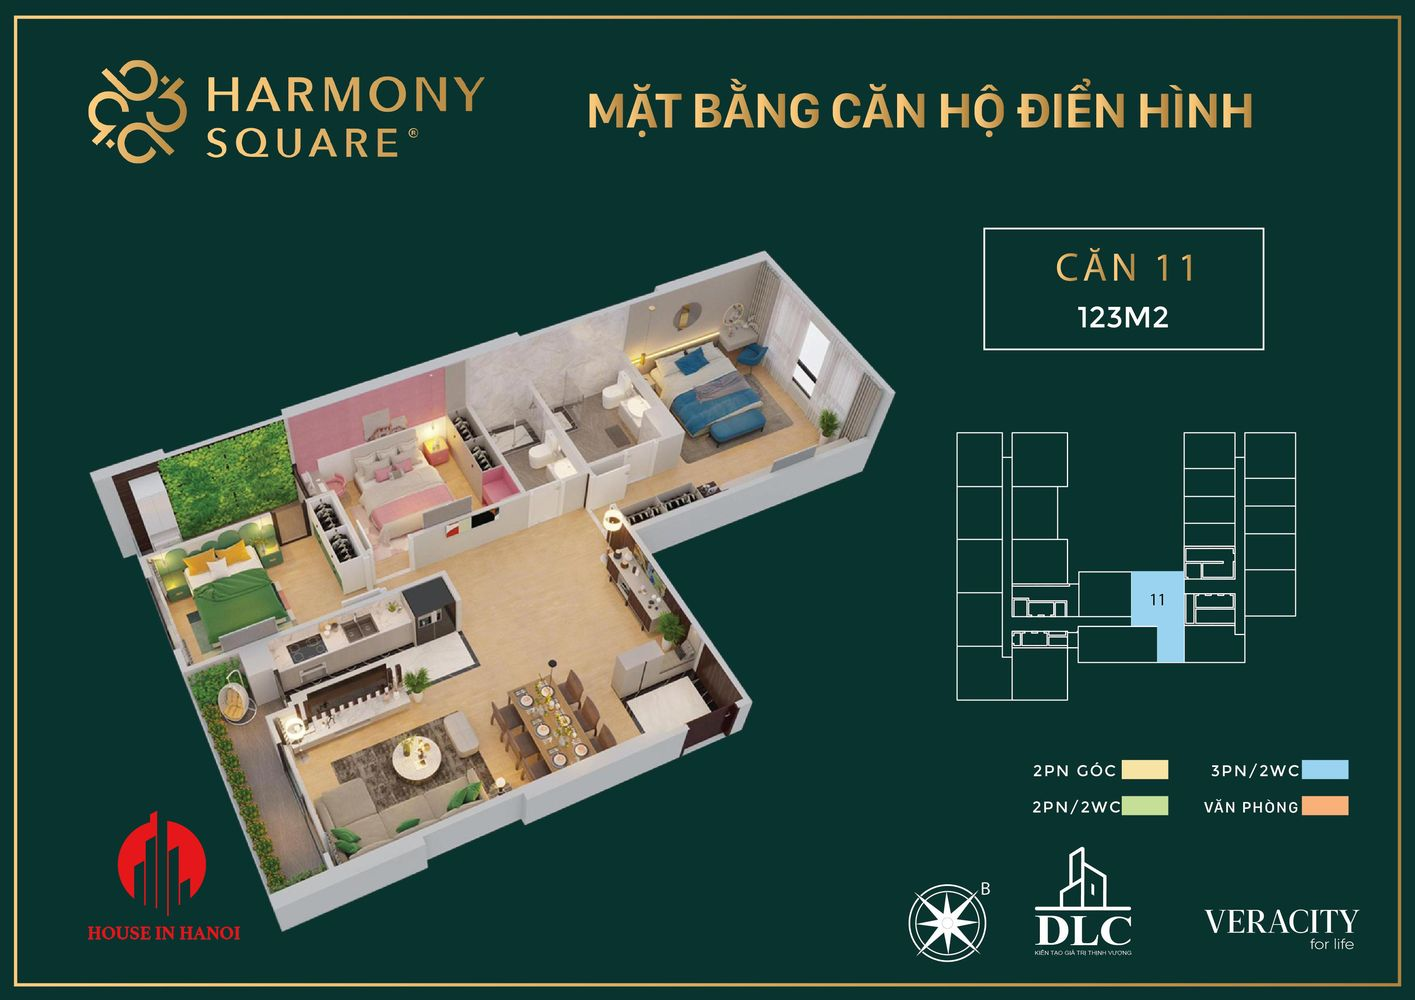 harmony square floor plan 8